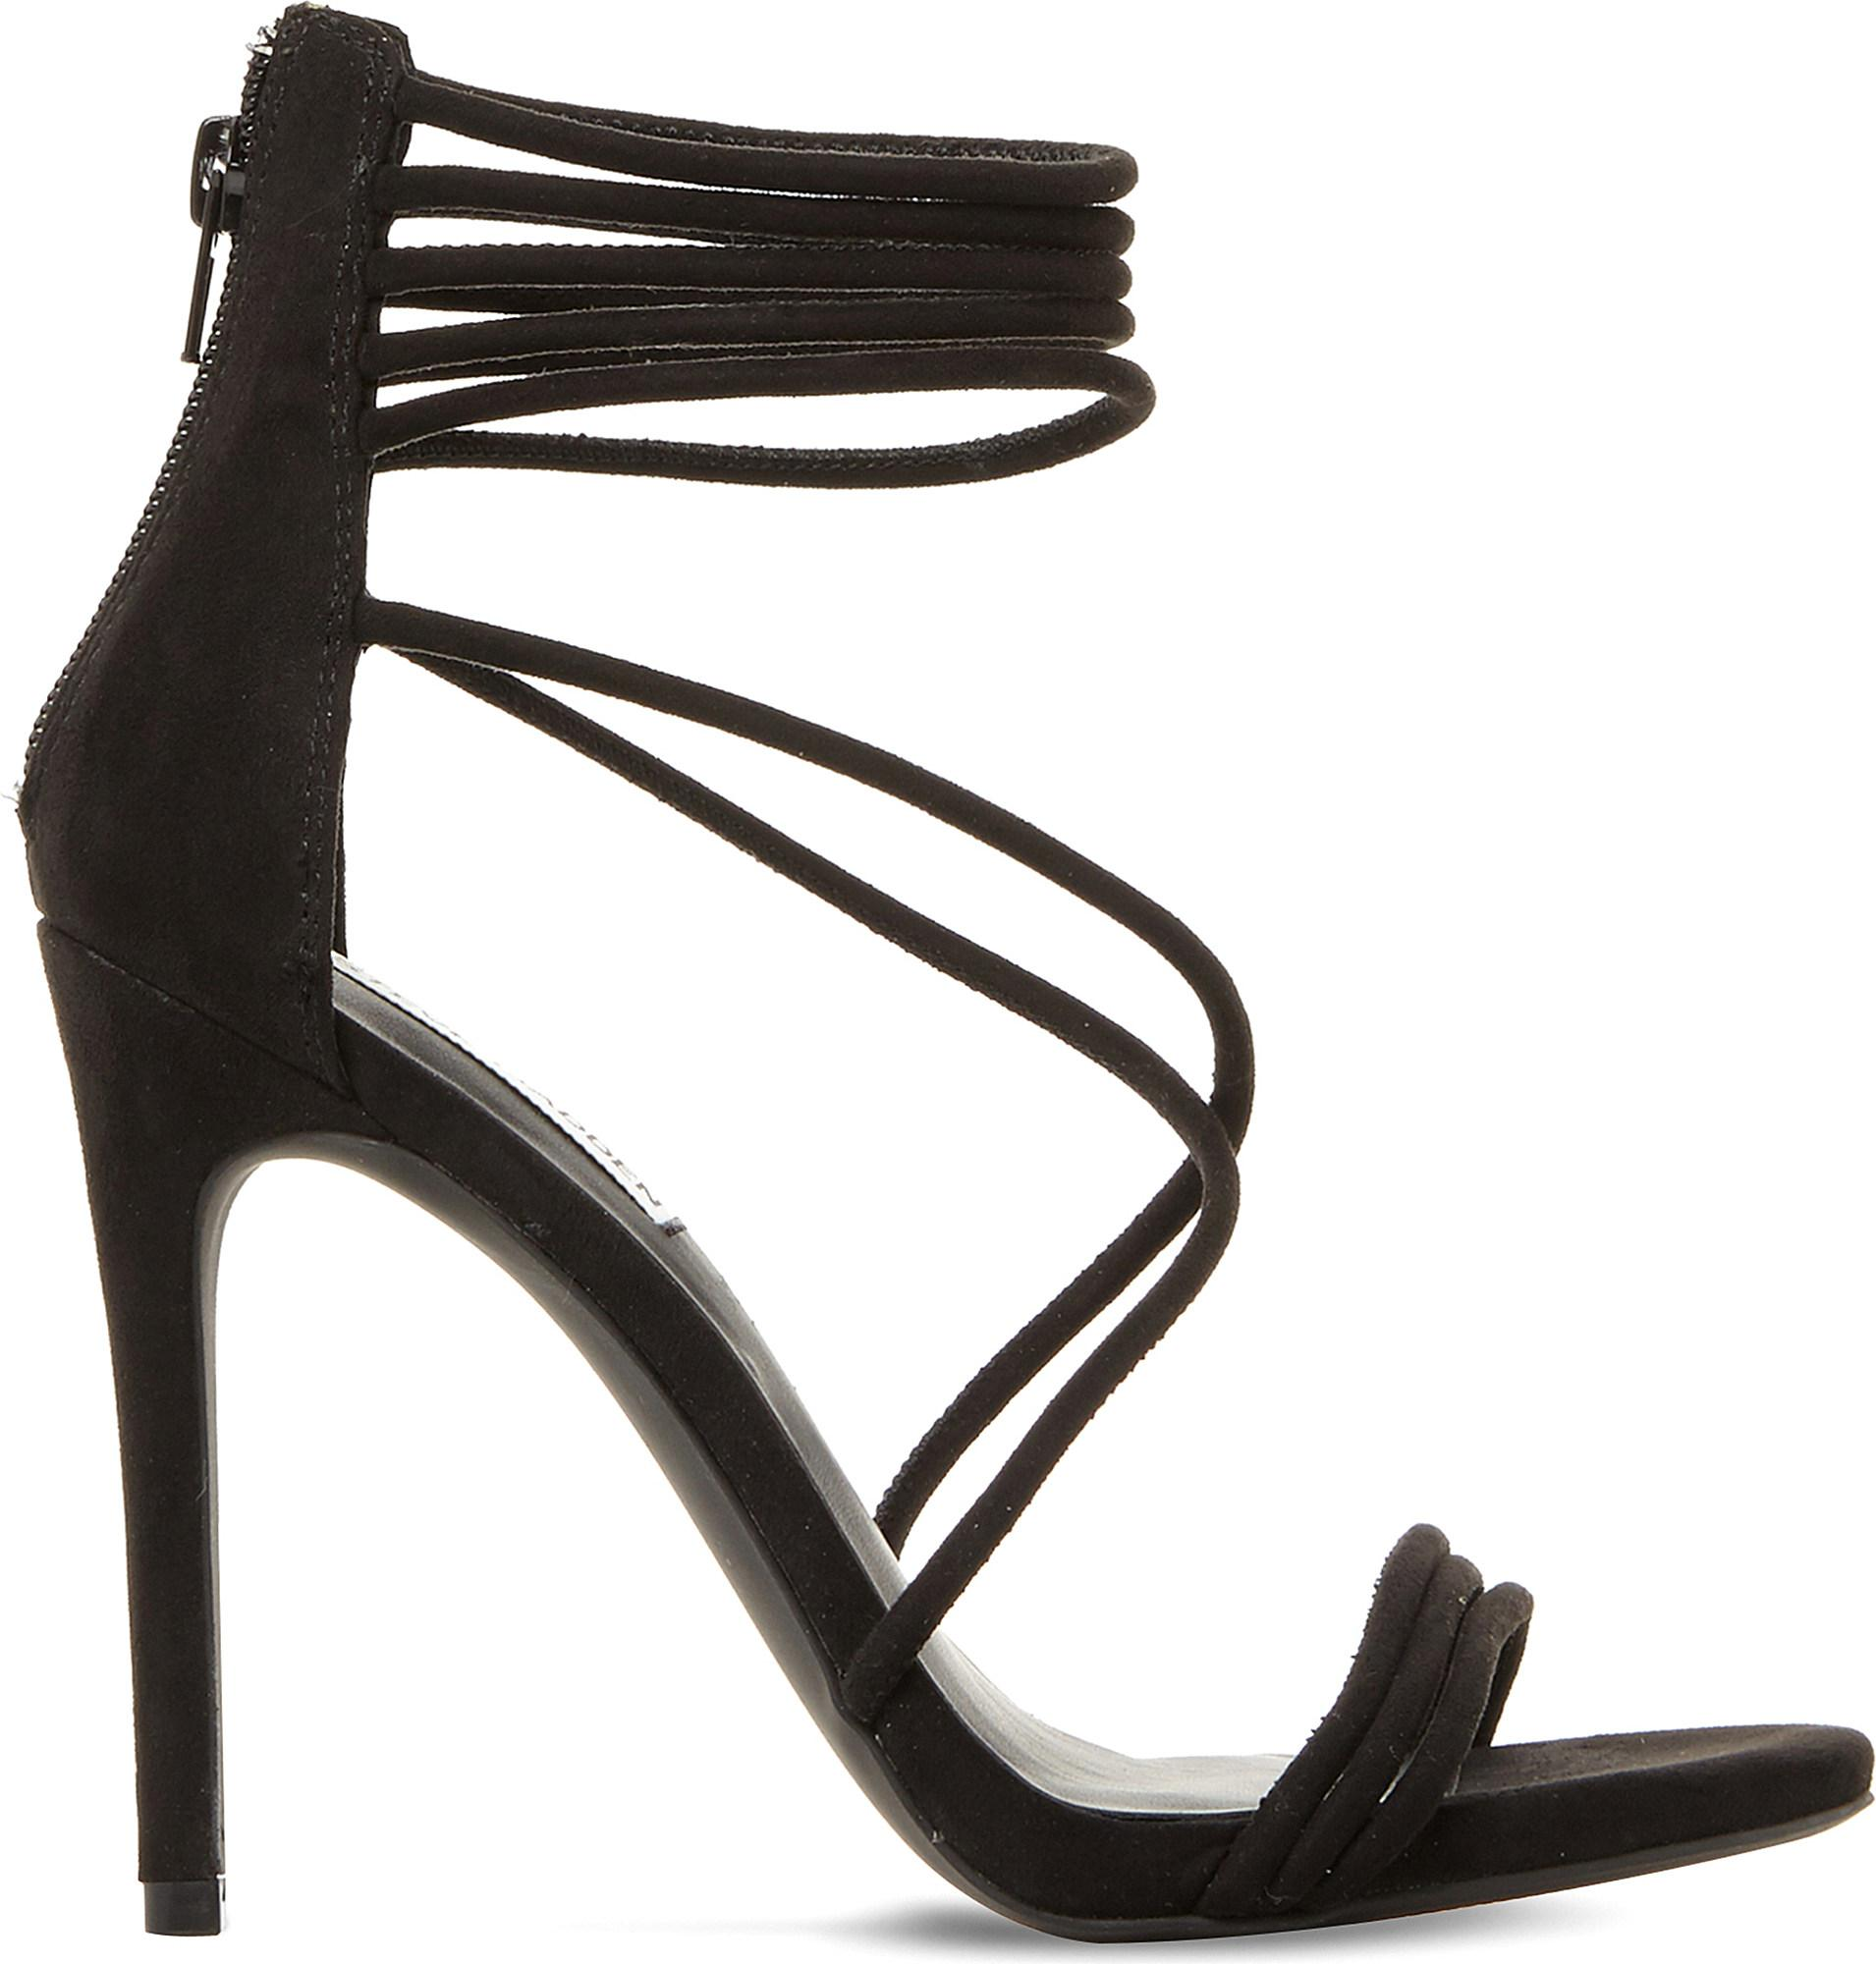 60723015f3c Lyst - Steve Madden Answer Sm Suede Sandals in Black